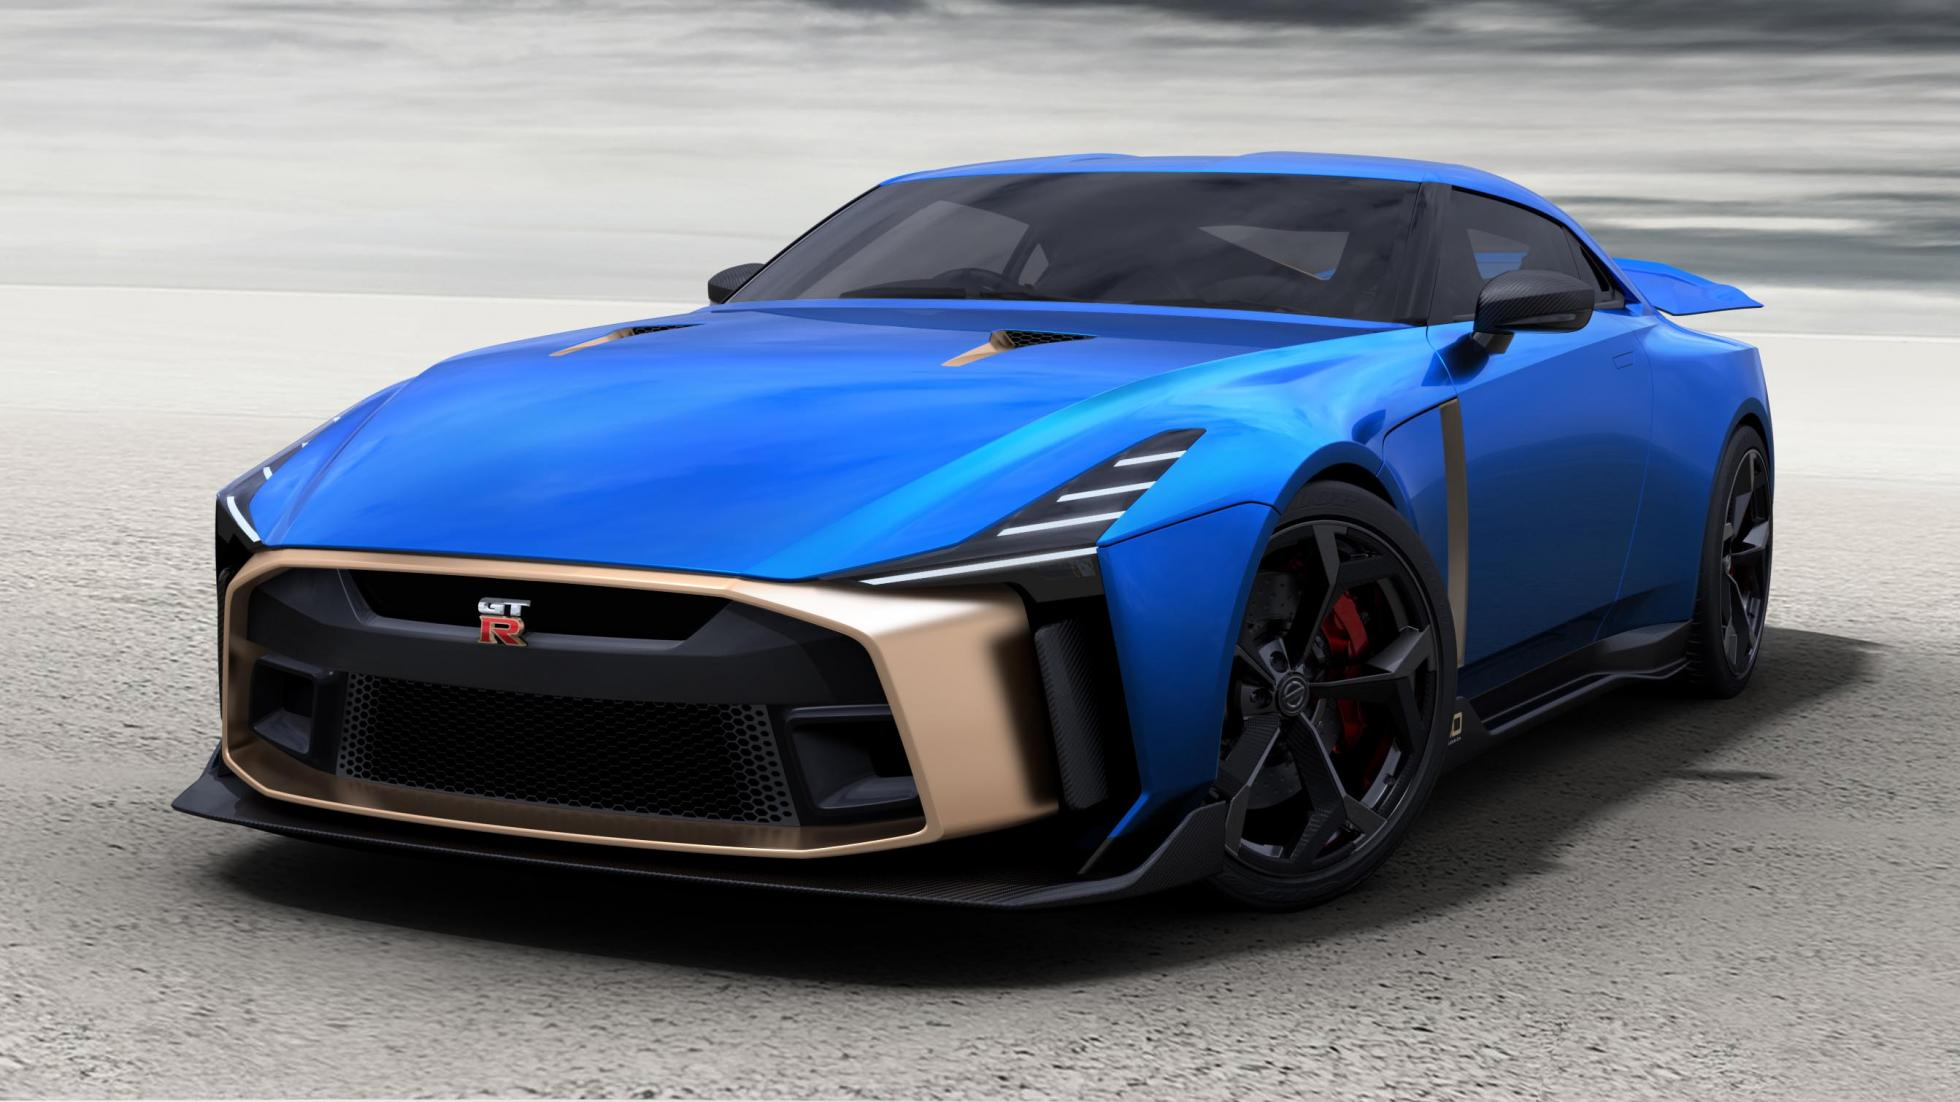 la nissan gt r50 italdesign sera produite topgear. Black Bedroom Furniture Sets. Home Design Ideas